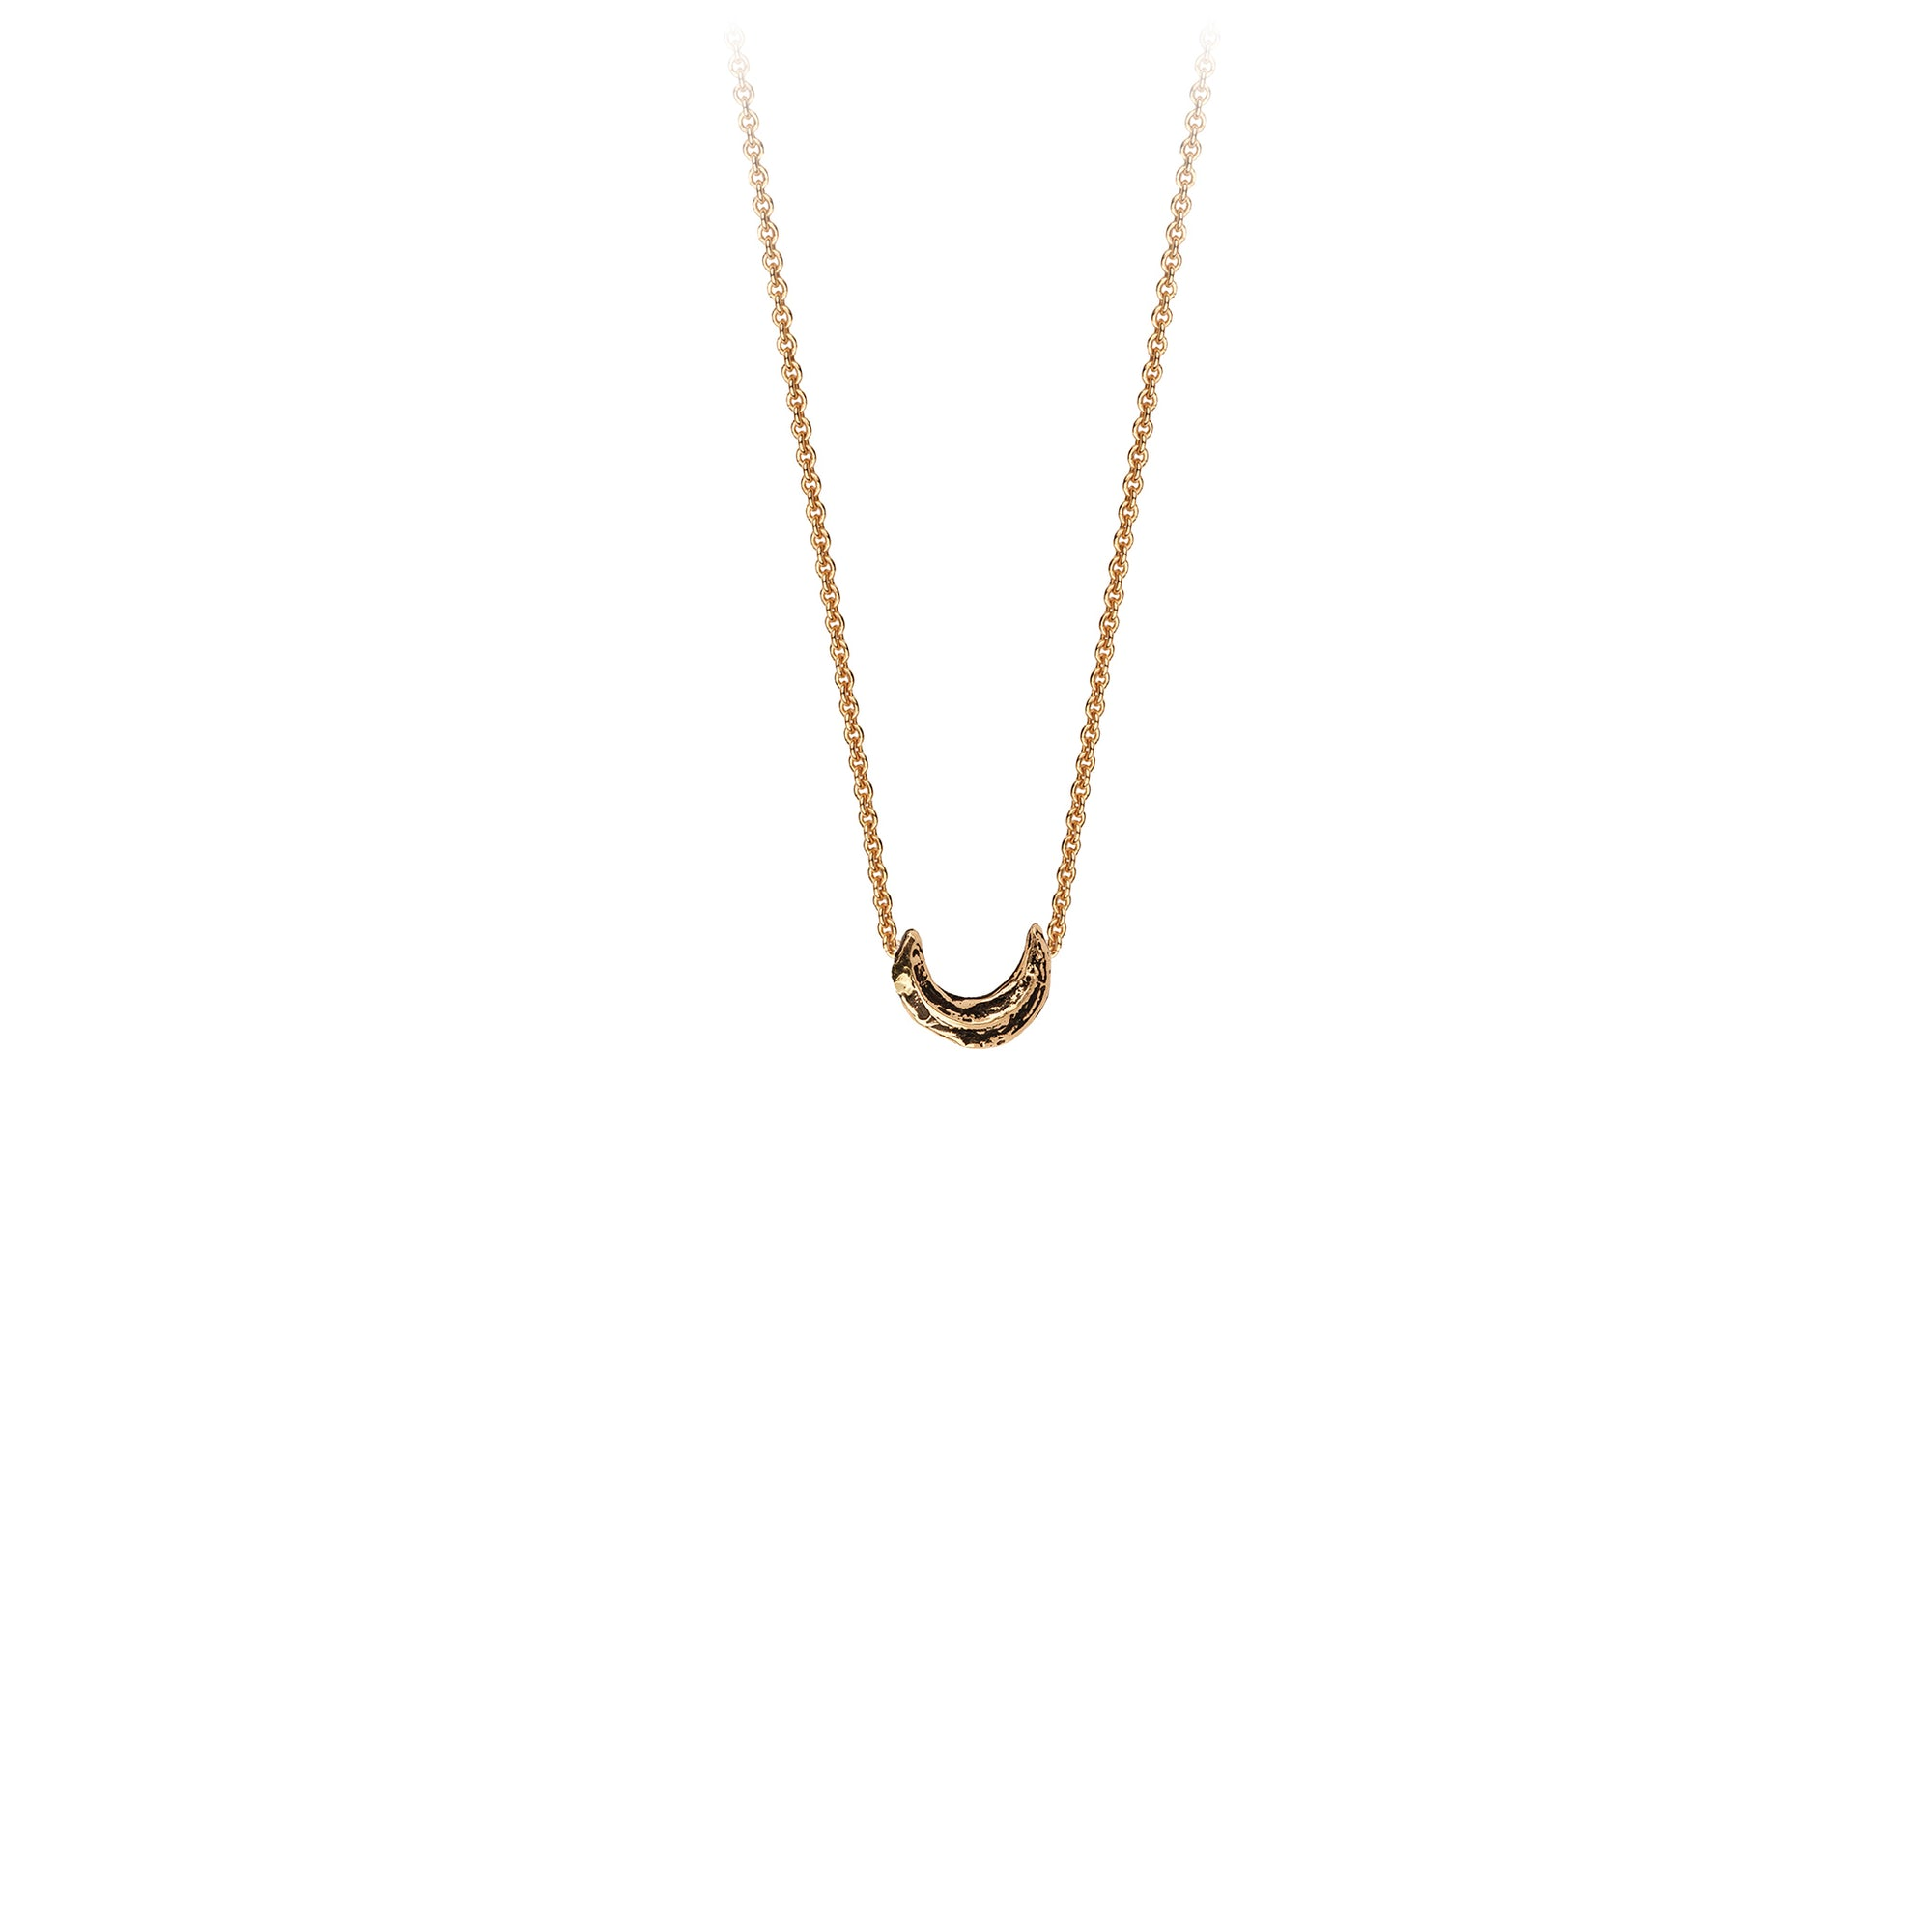 Pyrrha Crescent Moon 14K Gold Symbol Charm Necklace